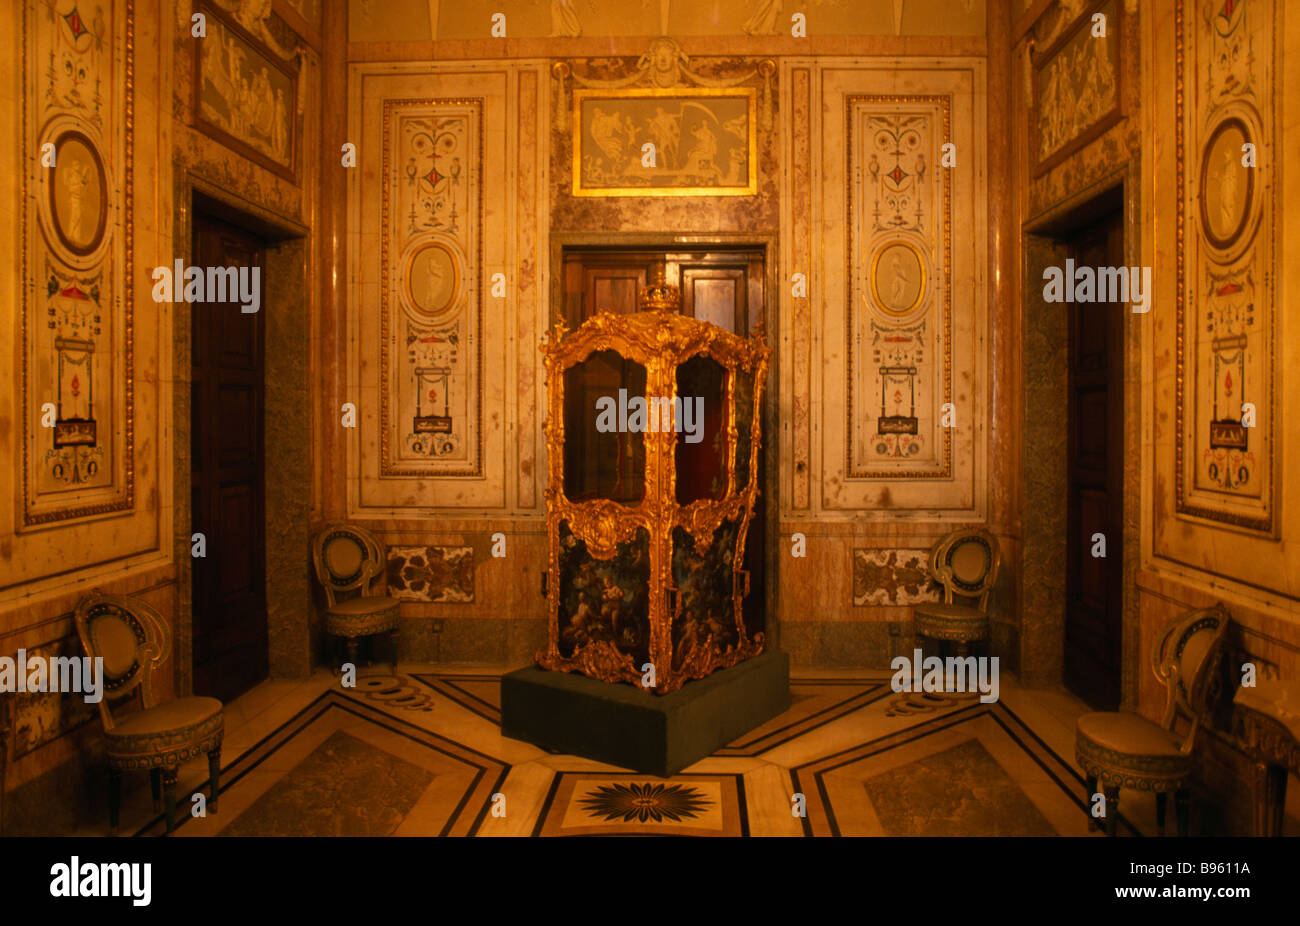 Spain madrid state madrid palacio real royal palace small for Small room in spanish